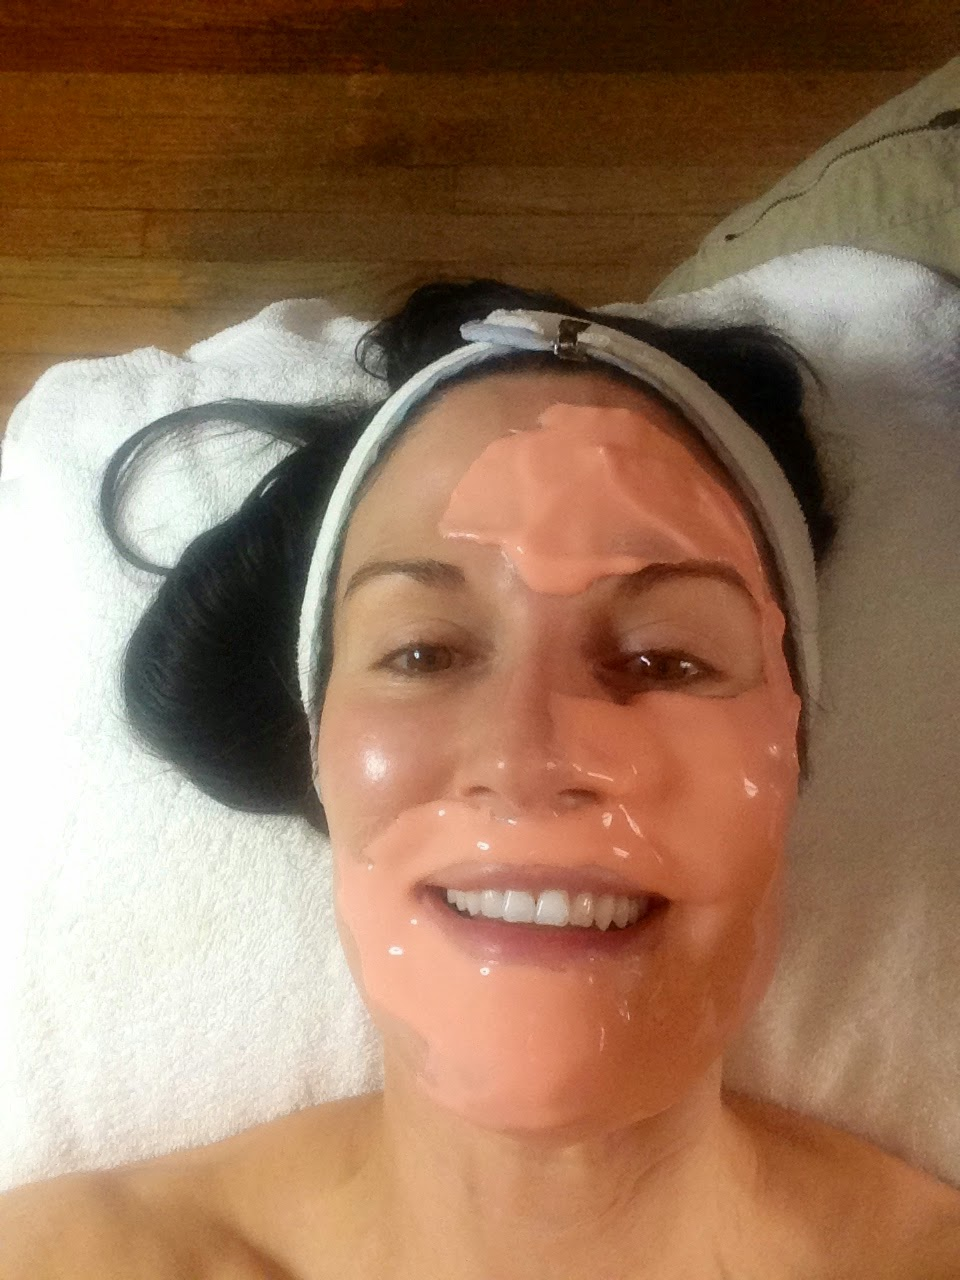 vitamin c mask, vitamin c antioxidant mask, dermaplane facial review